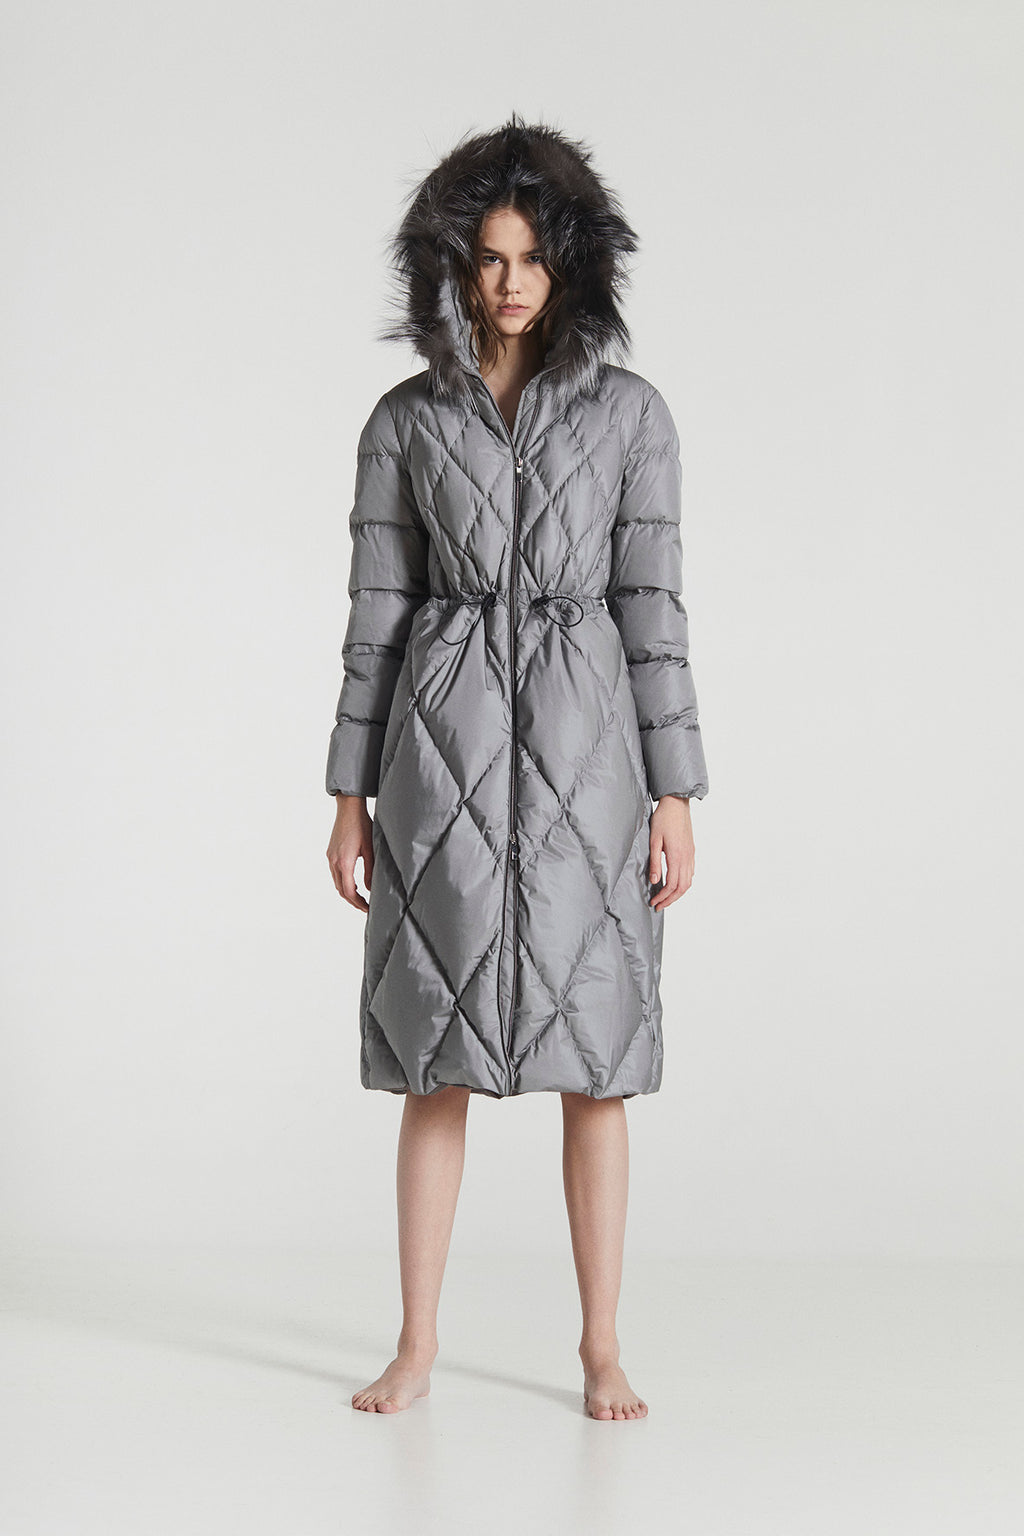 CECILIA MAXI / Silver Grey Goose Down diamond stitched Winter Coat